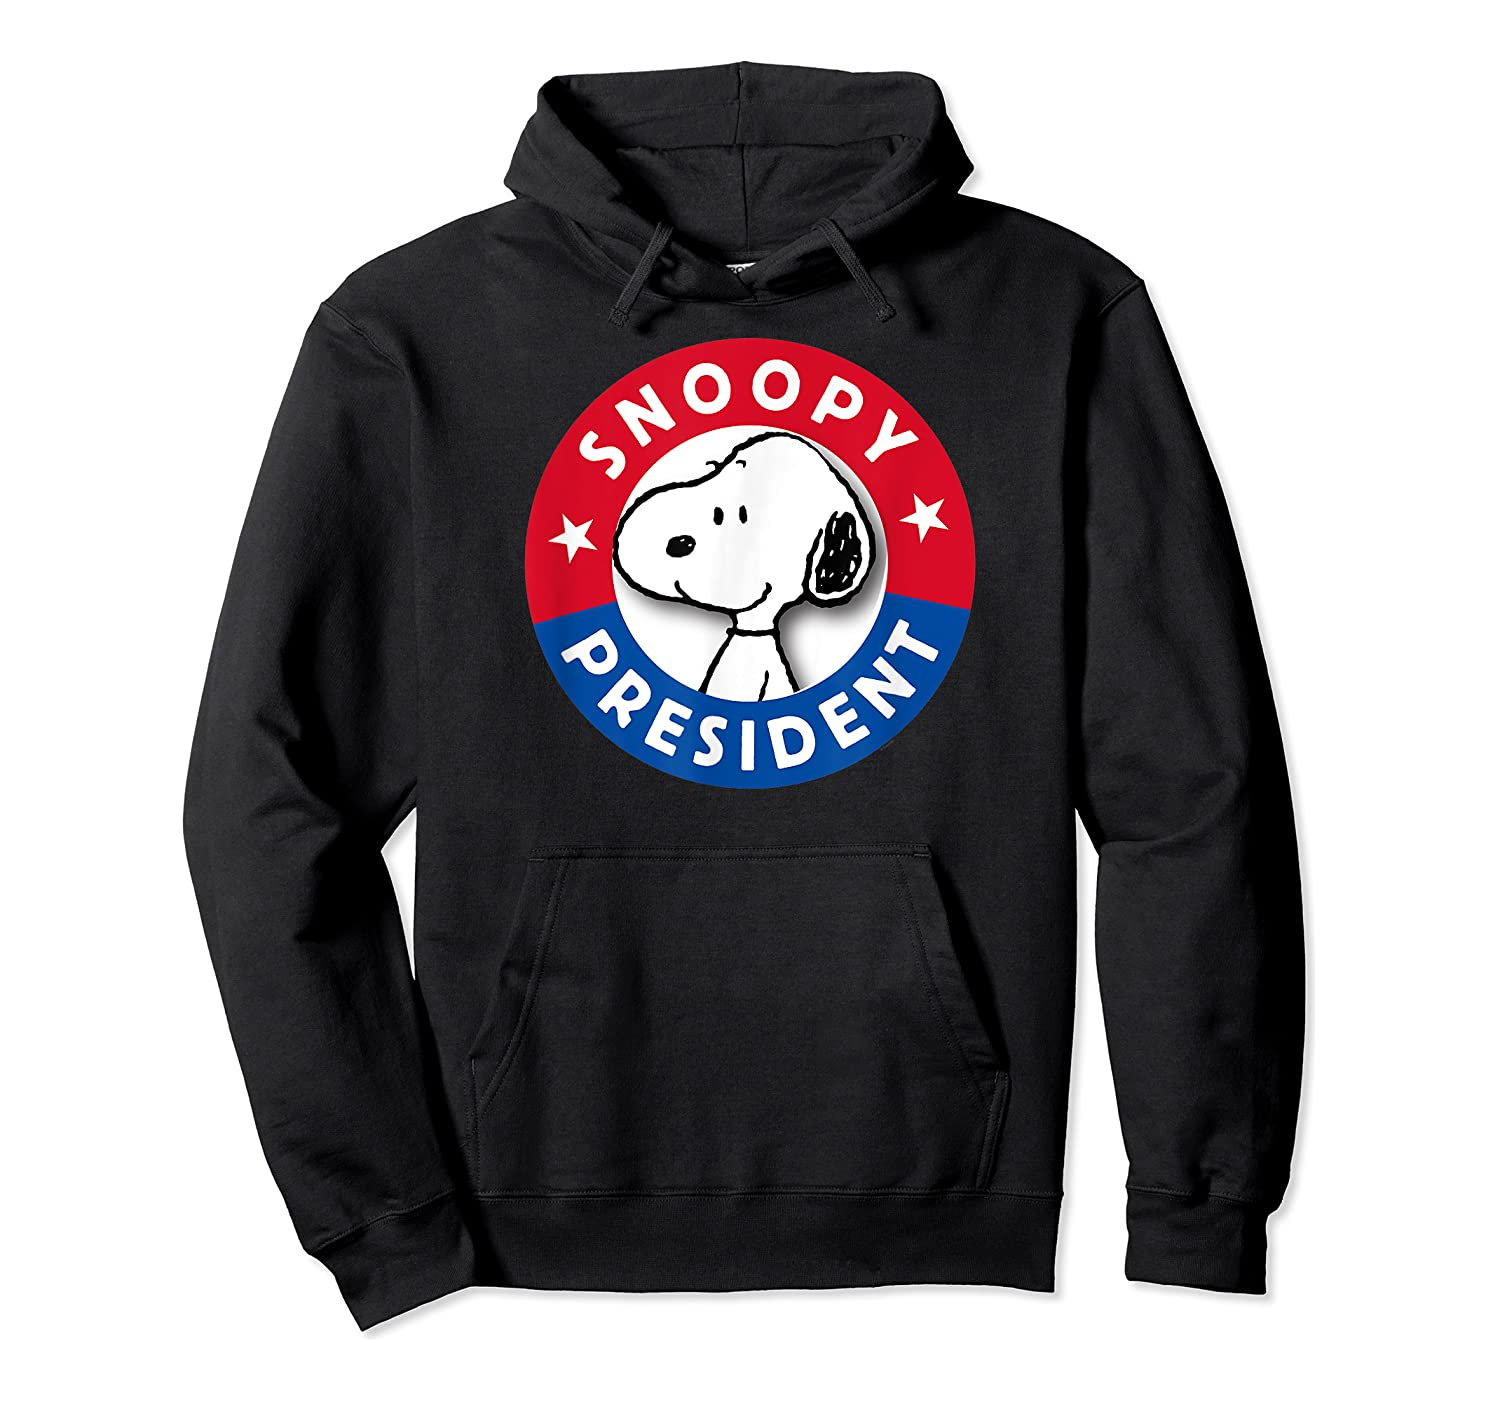 Peanuts Snoopy For President Shirts Unisex Pullover Hoodie